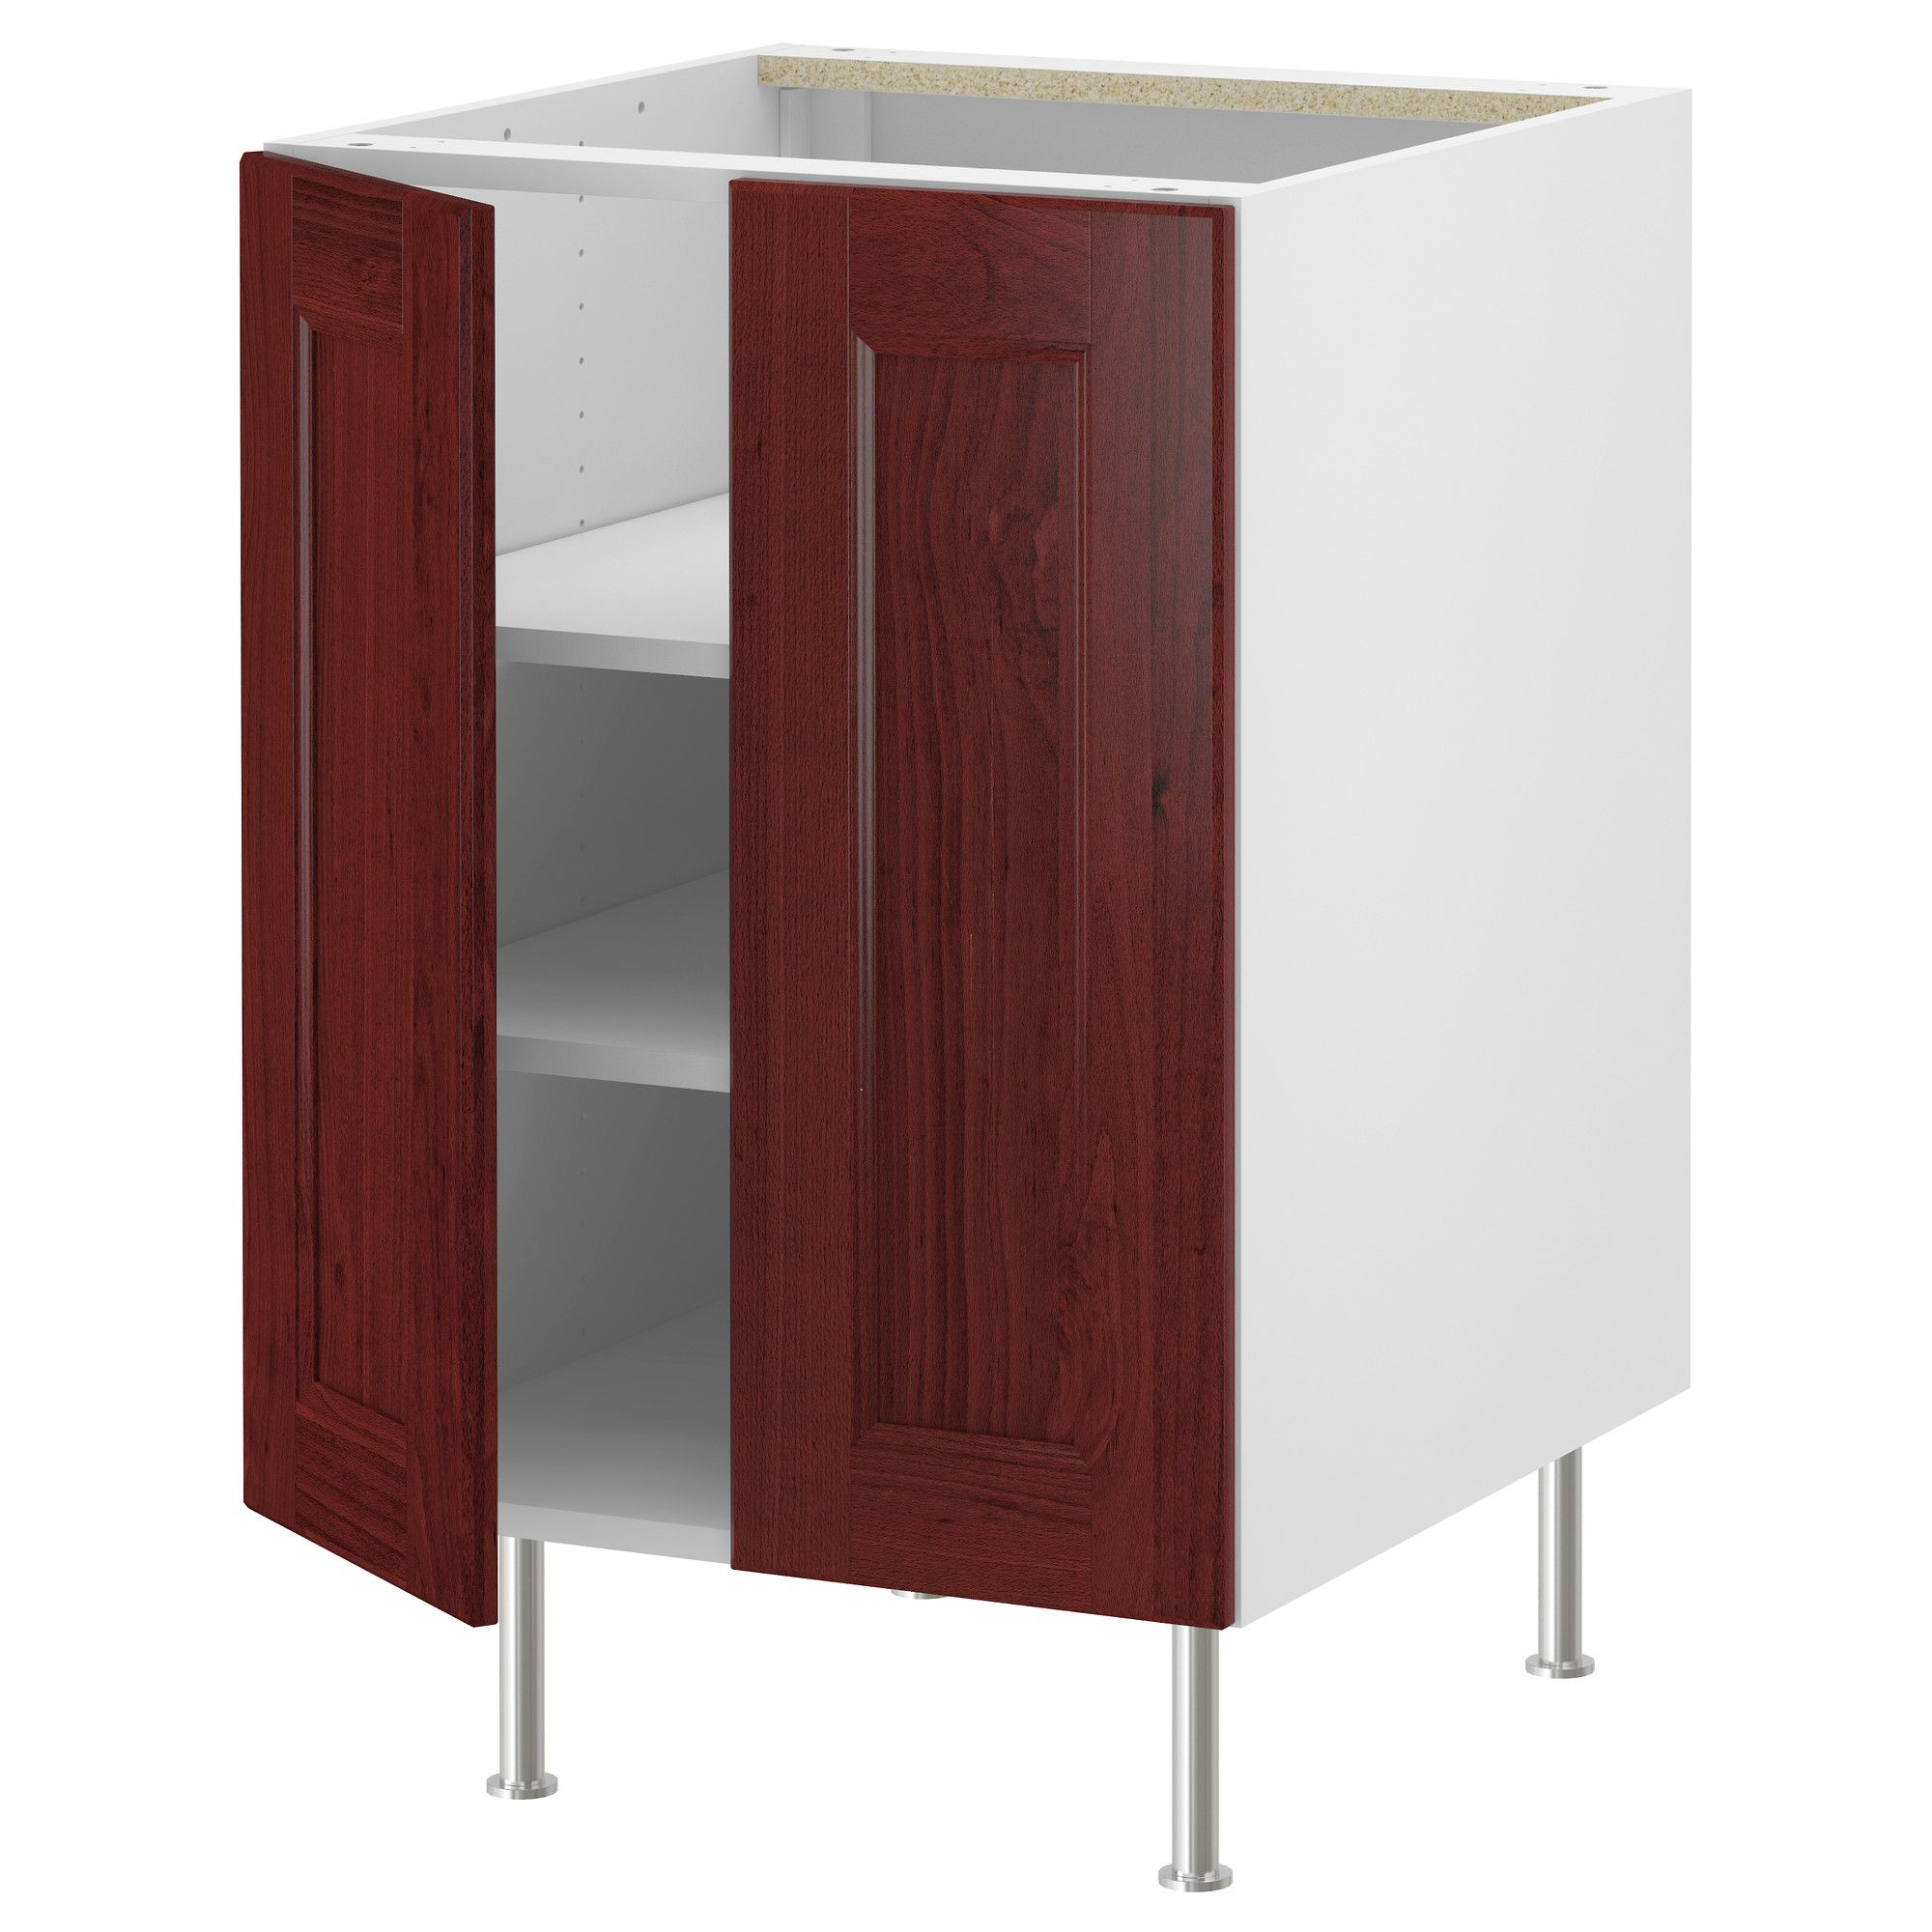 Ordinaire AKURUM Base Cabinet W Shelf/2 Doors   White, Ramsjö Red Brown, 30   IKEA  $179 (Need 3)